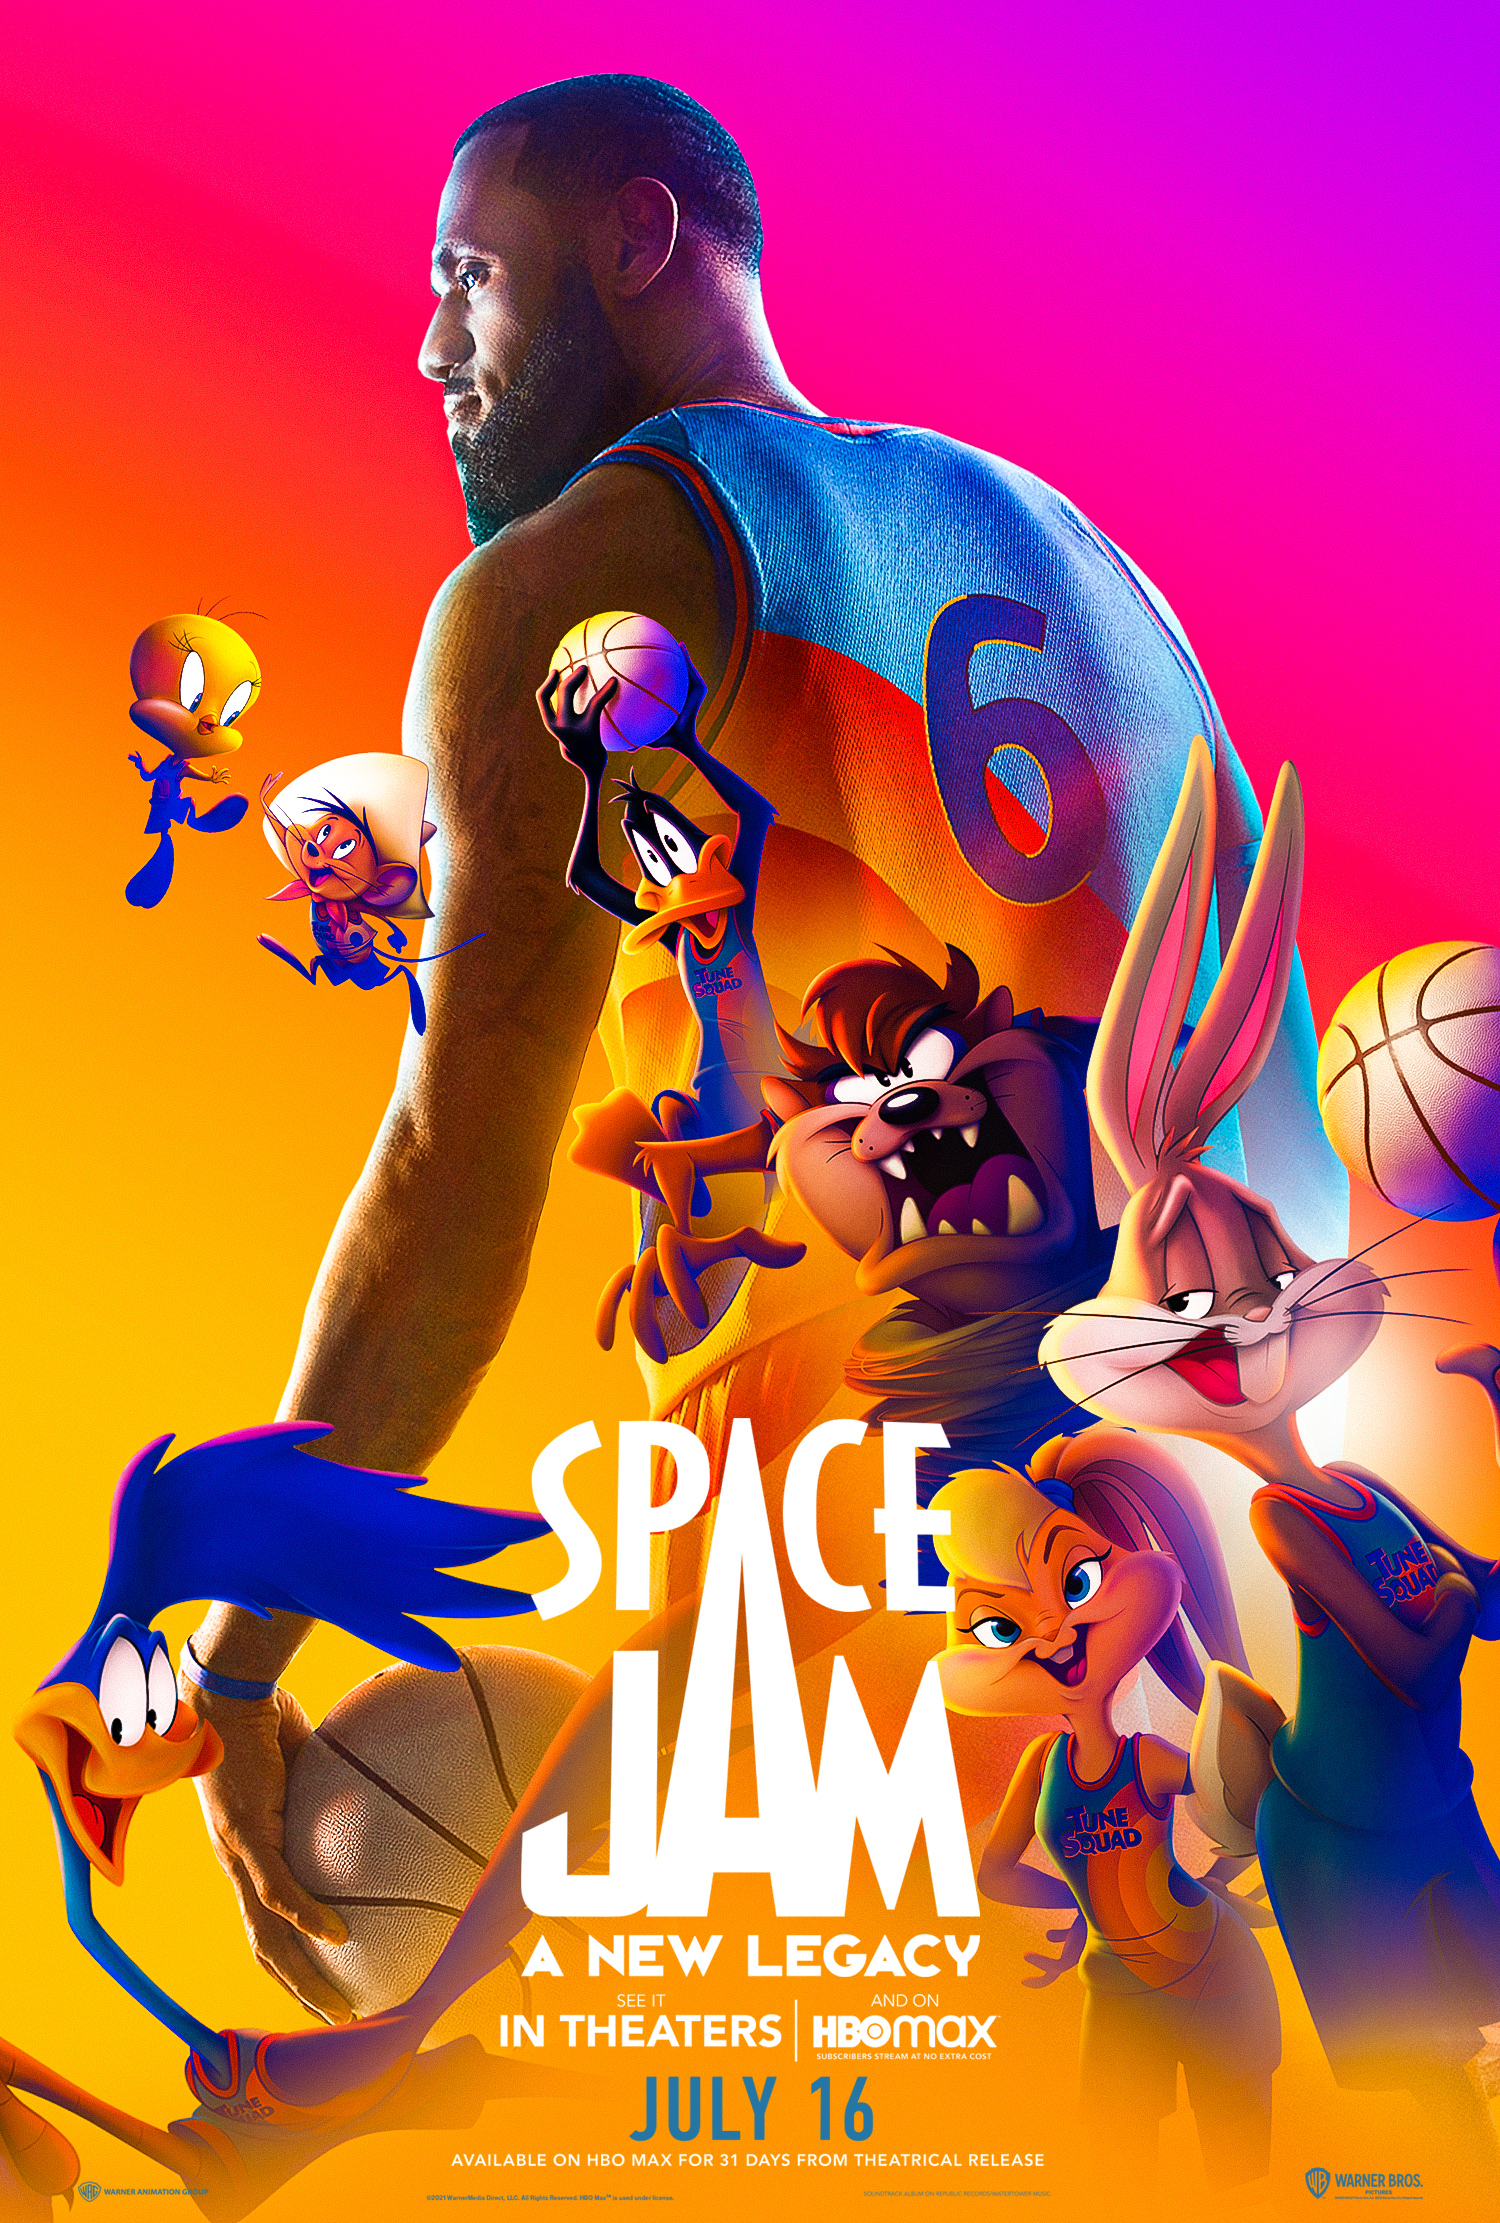 Space_Jam_A_New_Legacy_2021_poster_9.jpg